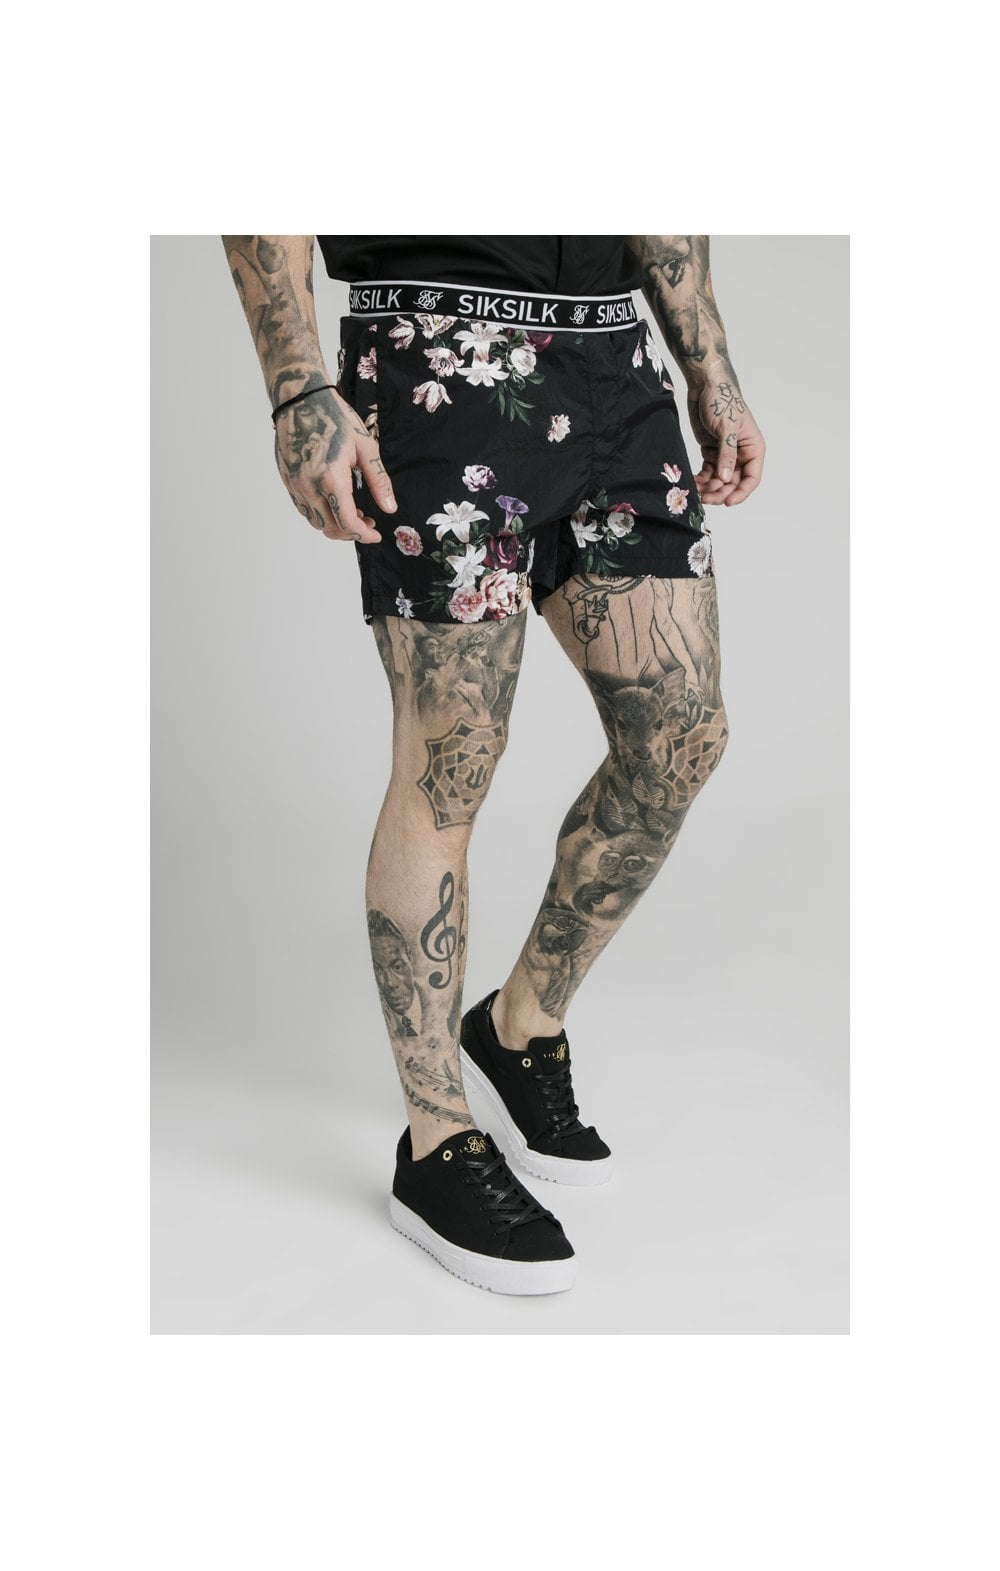 Load image into Gallery viewer, SikSilk Prestige Floral Swim Shorts - Black (3)